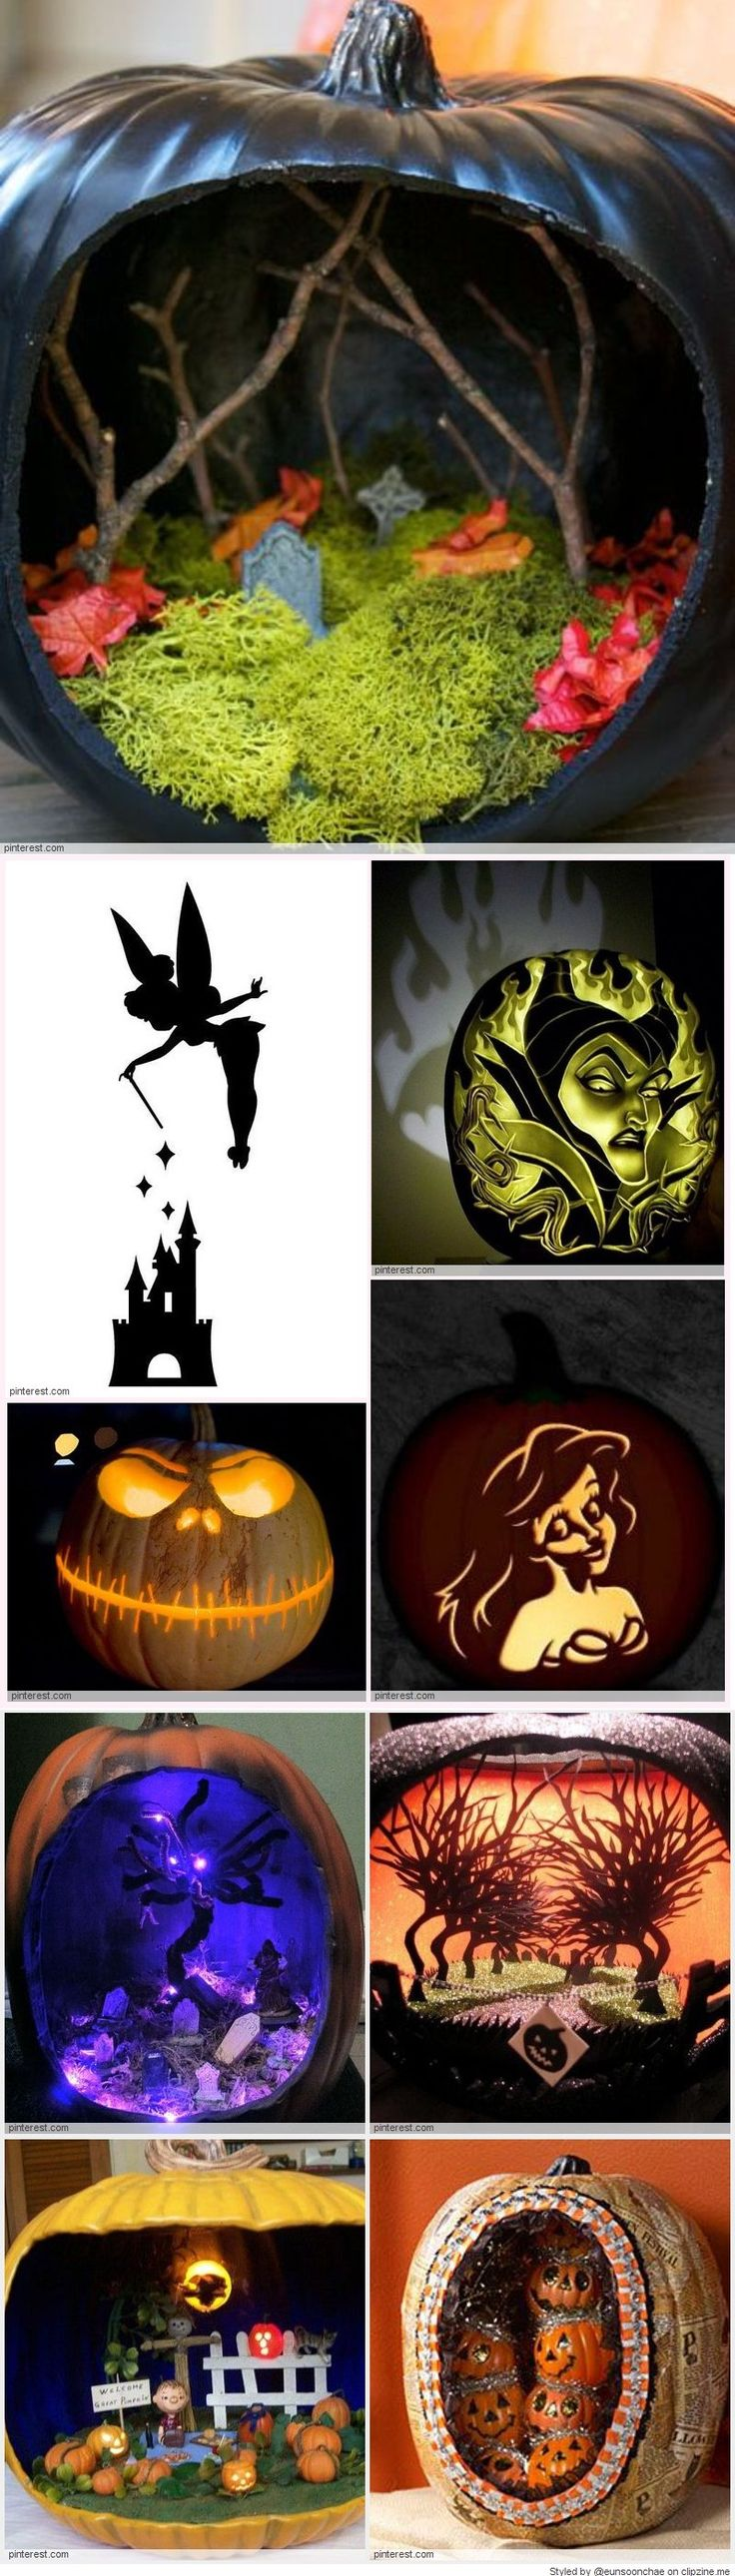 cool pumpkin carving ideas new halloween pinterest. Black Bedroom Furniture Sets. Home Design Ideas